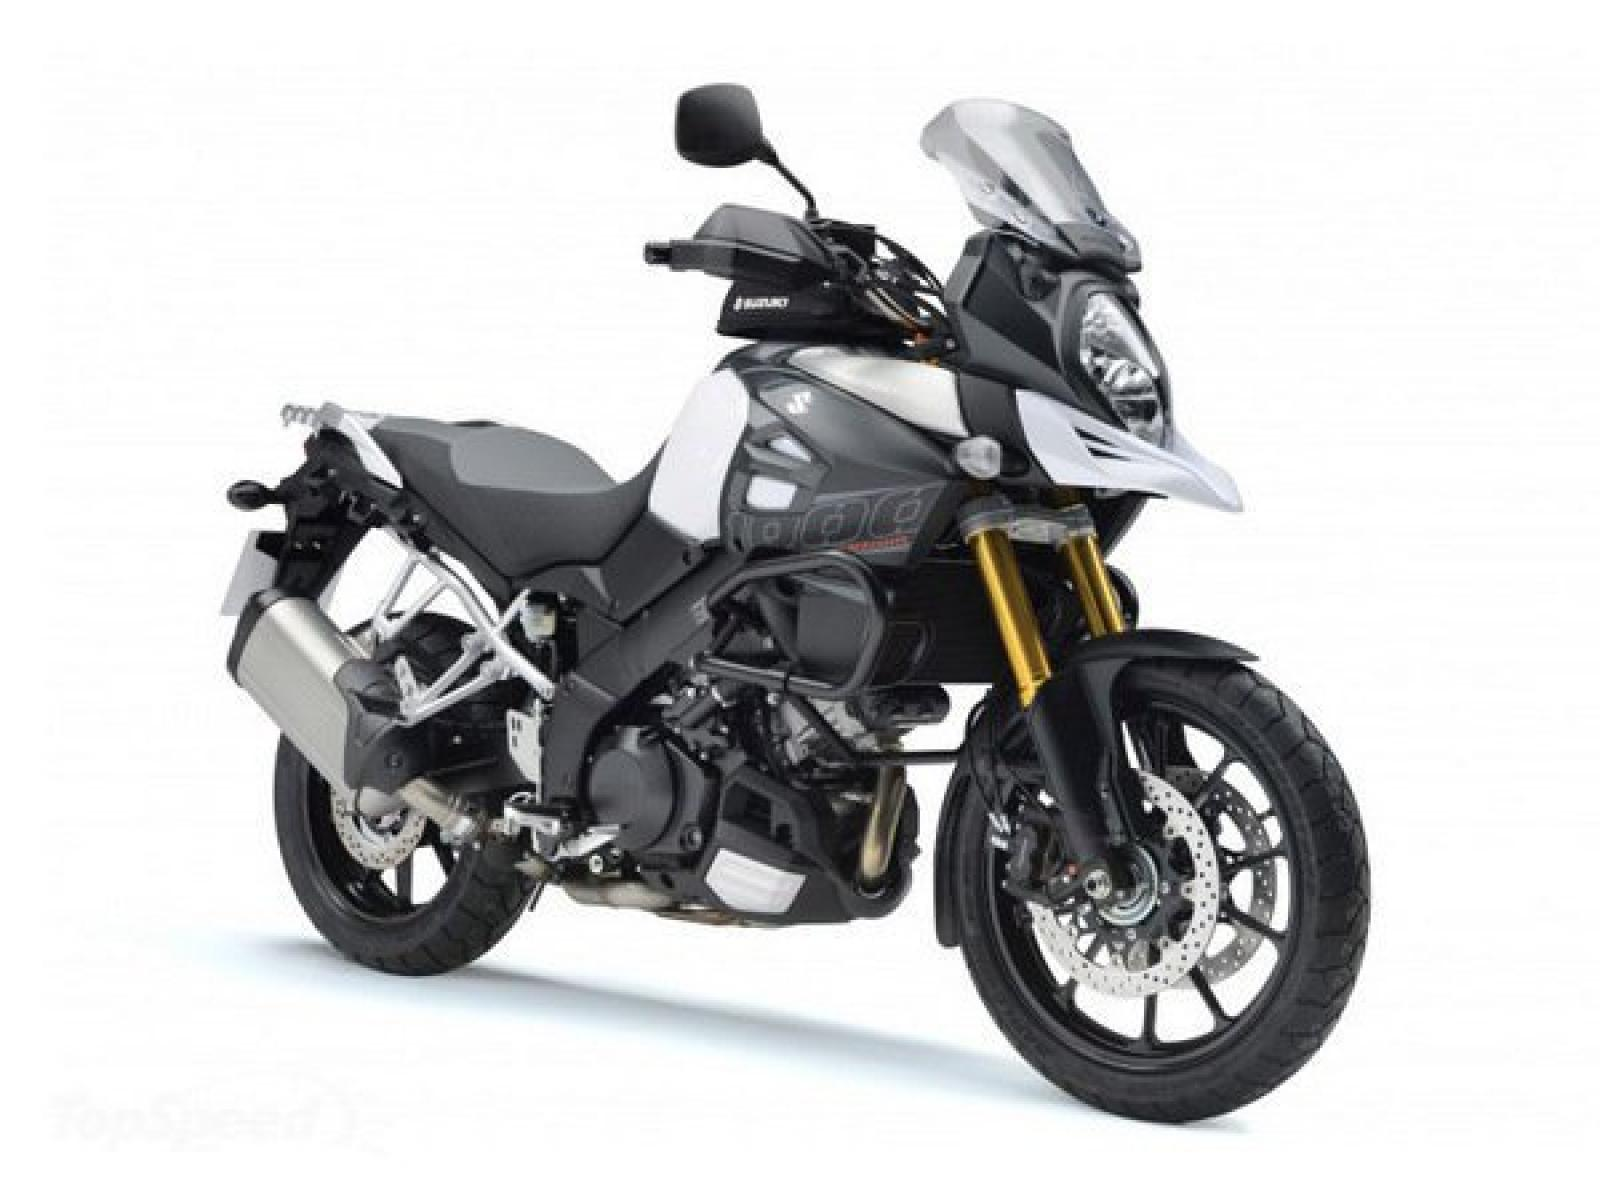 2014 suzuki v strom 650 abs moto zombdrive com. Black Bedroom Furniture Sets. Home Design Ideas